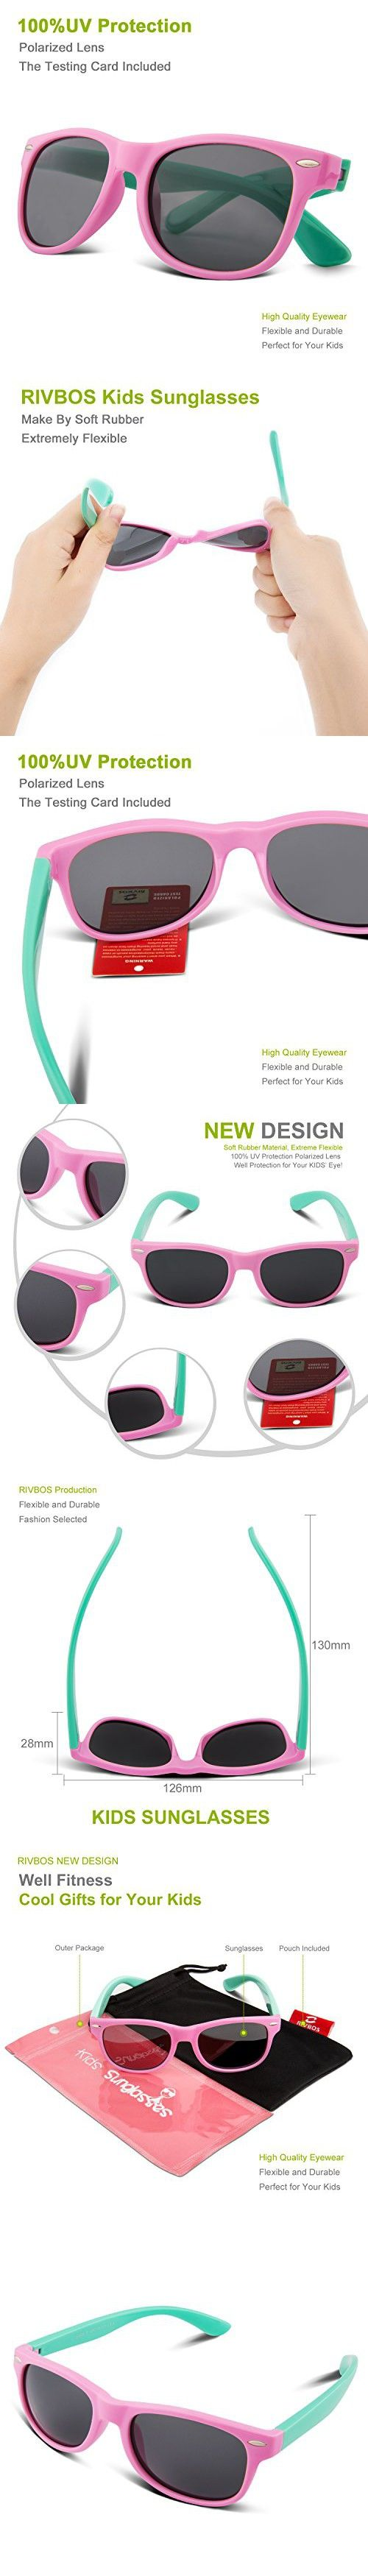 e71fa3bcee RIVBOS RBK004 Rubber Flexible Kids Polarized Sunglasses Age 3-10 (W Pink)